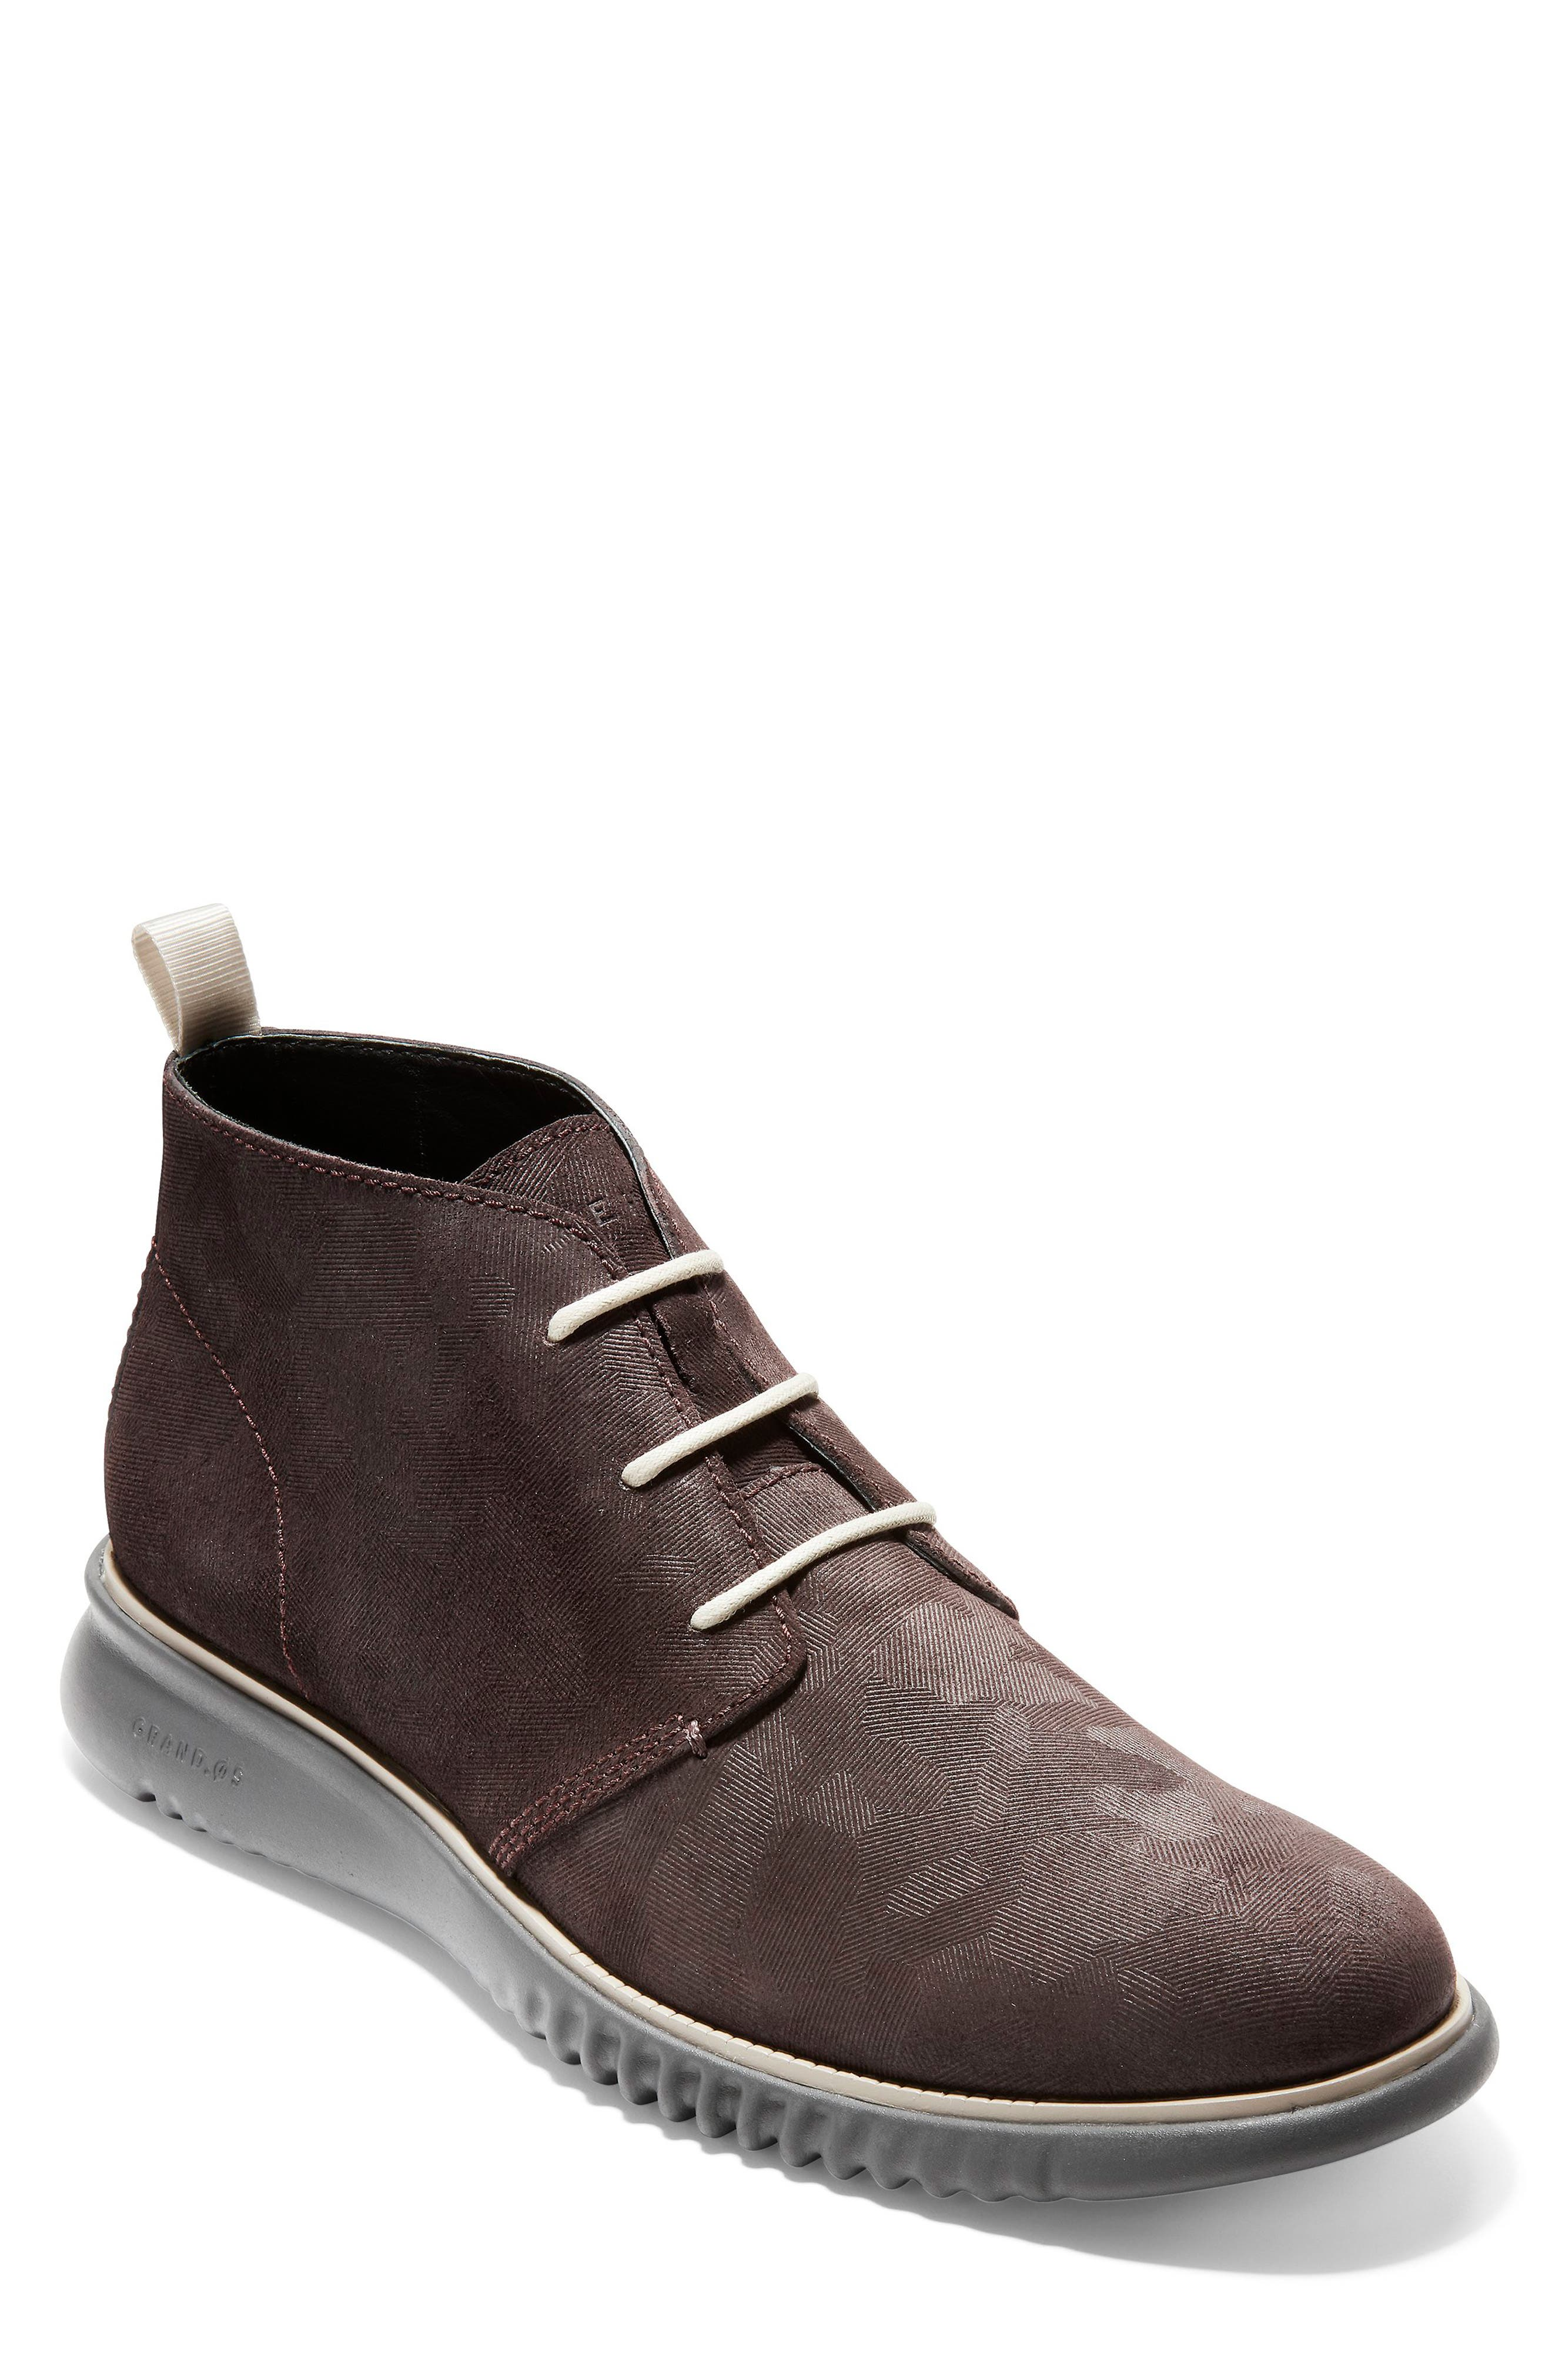 Cole Haan 2.zerogrand Chukka Boot- Brown